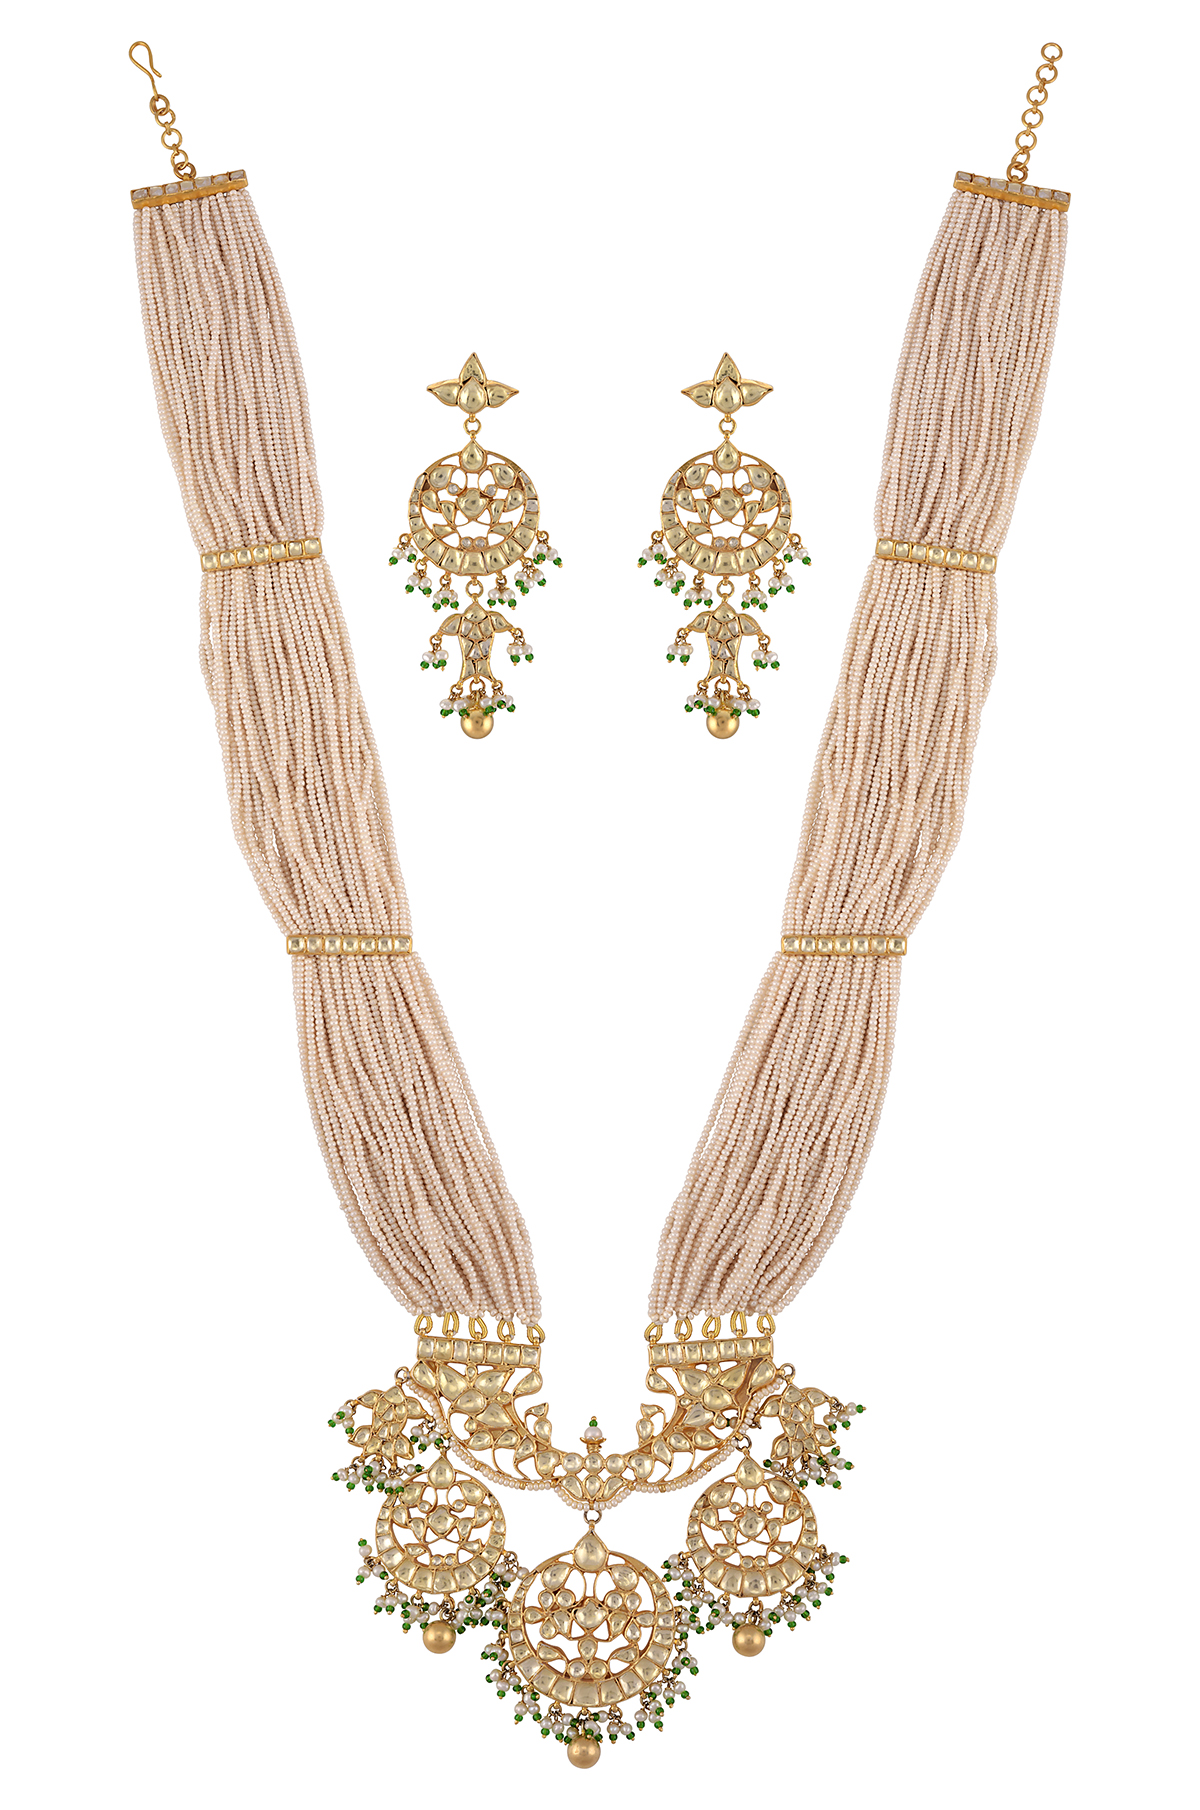 Silver Gold Plated Multi Strand Pearl Floral Fish Necklace Earrings Set